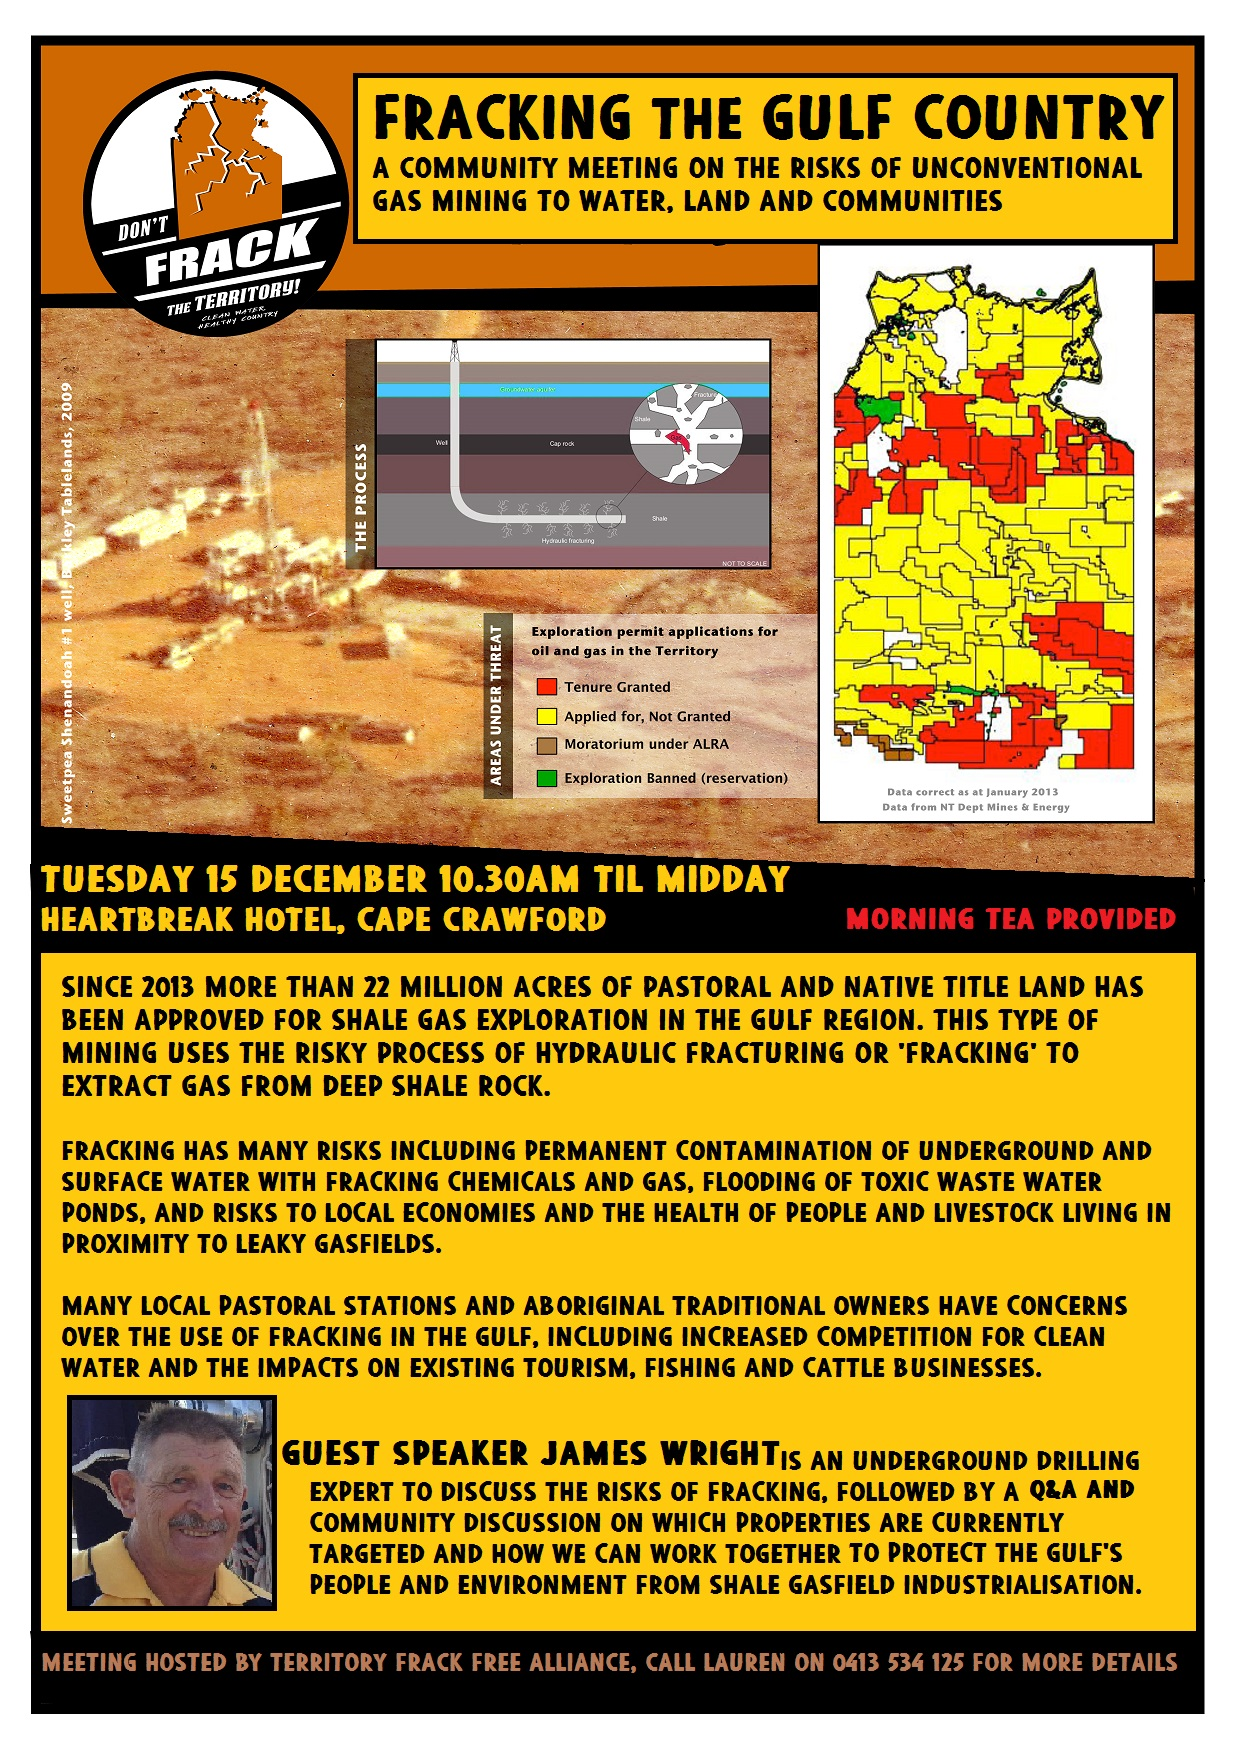 Gulf region fracking meeting flyer